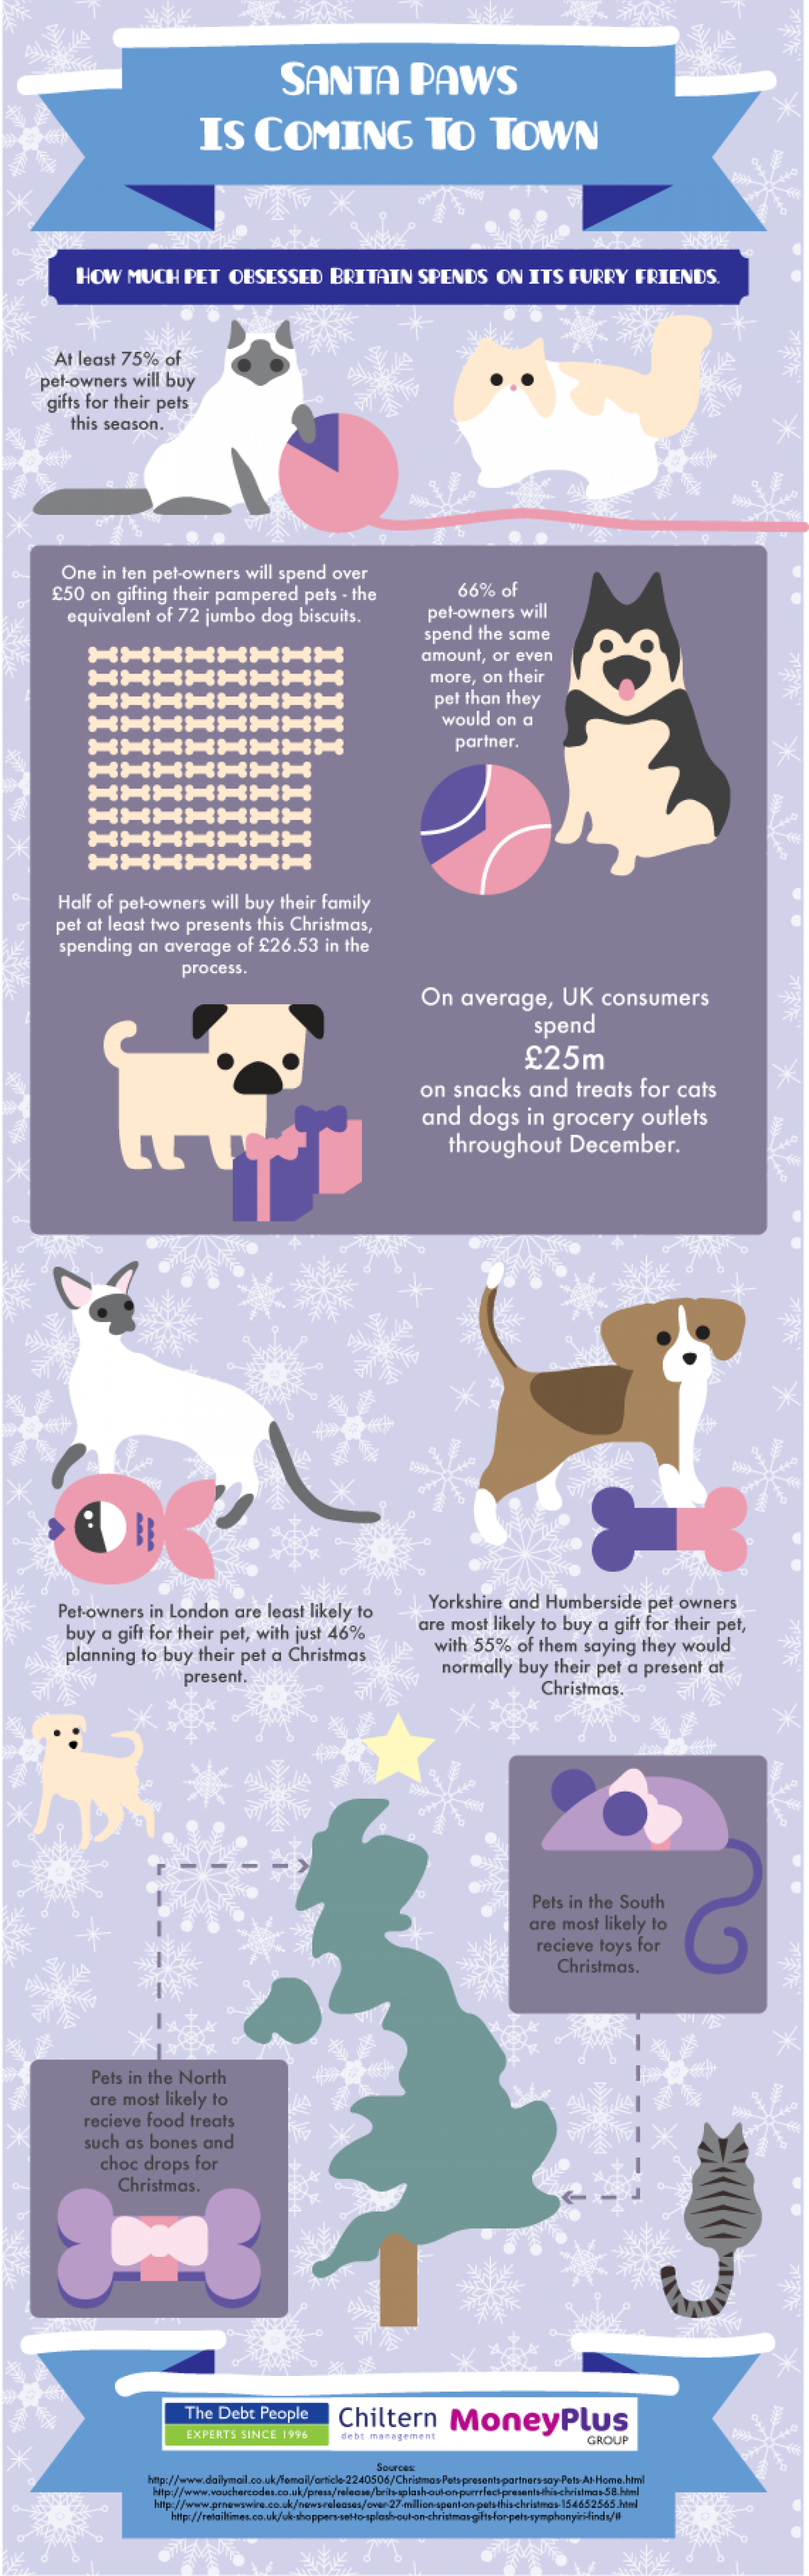 Santa Paws Is Coming To Town Infographic